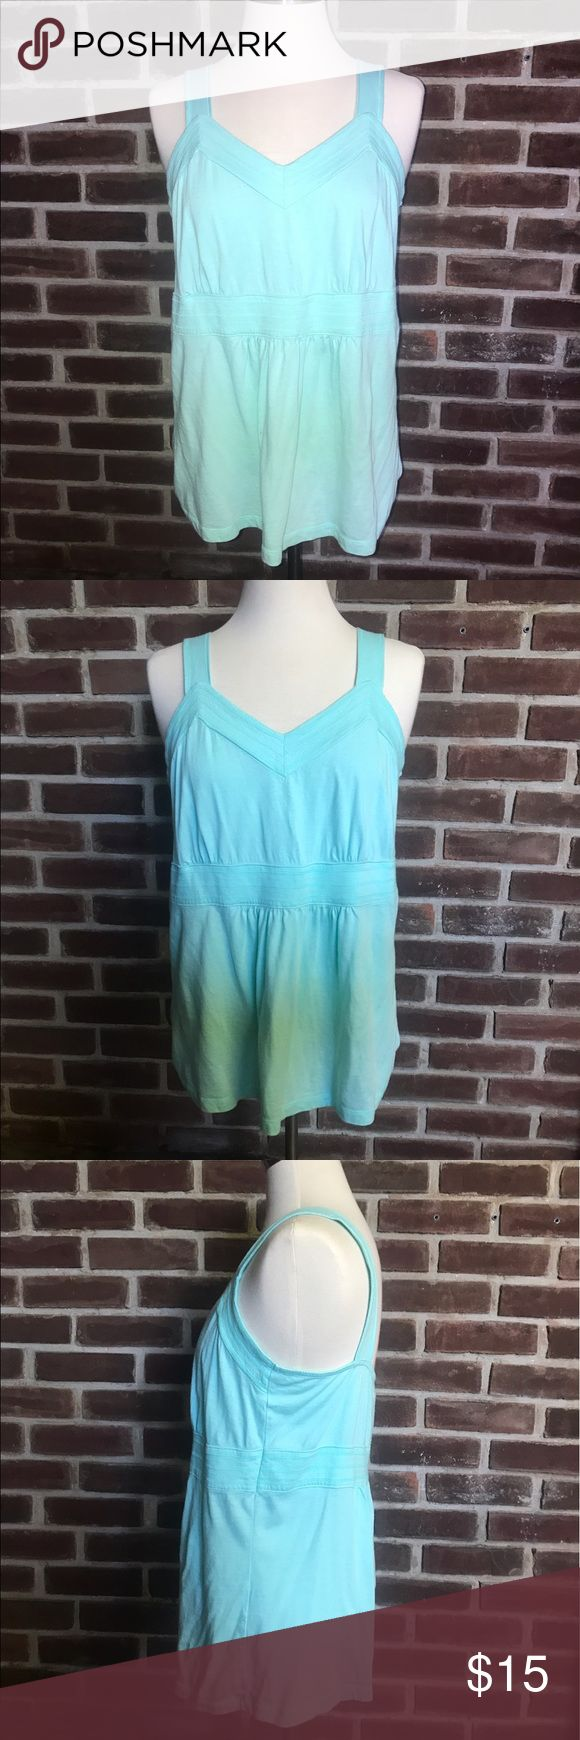 {Christopher & Banks} Tiffany Blue Tank Top SOLD ON EBAY! 60% Cotton, 40% Modal. Very soft. Beautiful Tiffany like blue color. Never worn & In excellent condition. Size Large. Made in Indonesia. Christopher & Banks Tops Tank Tops